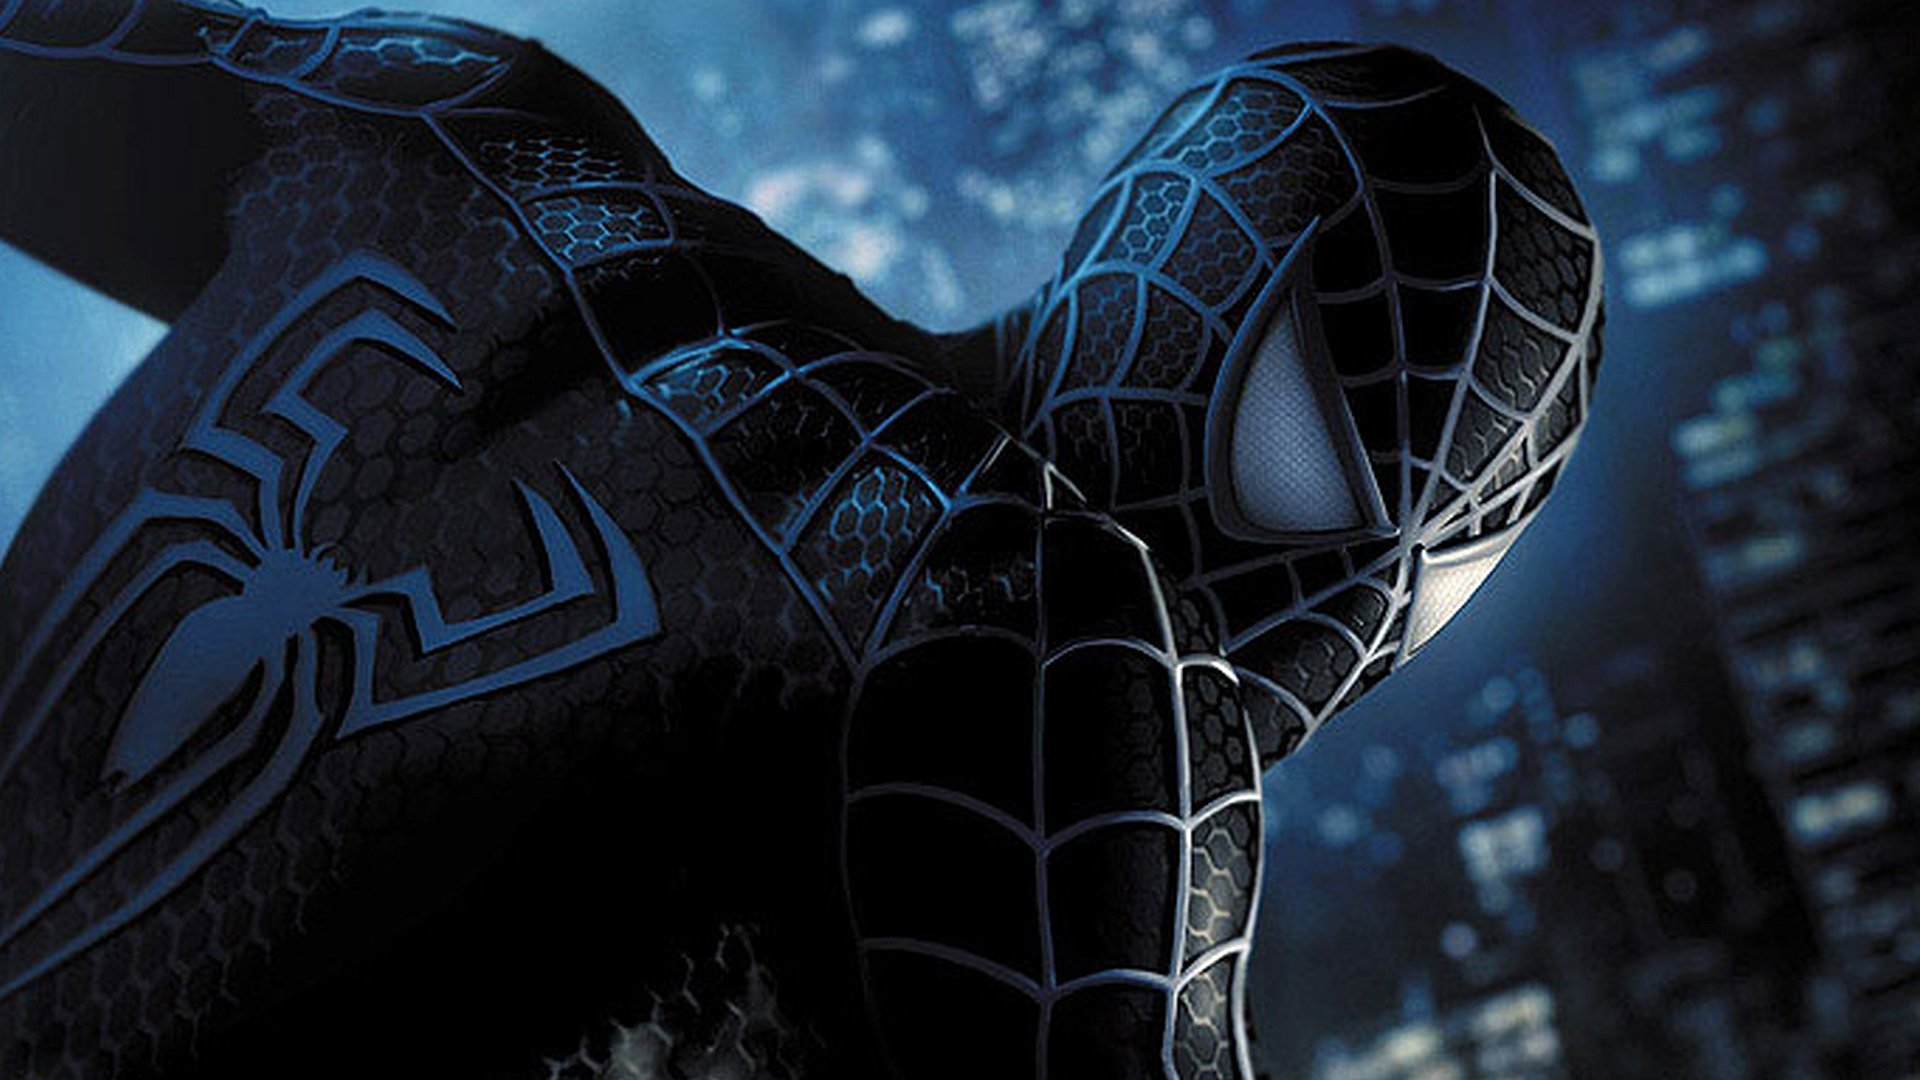 Download 1080p Spider-Man PC wallpaper ID:104269 for free